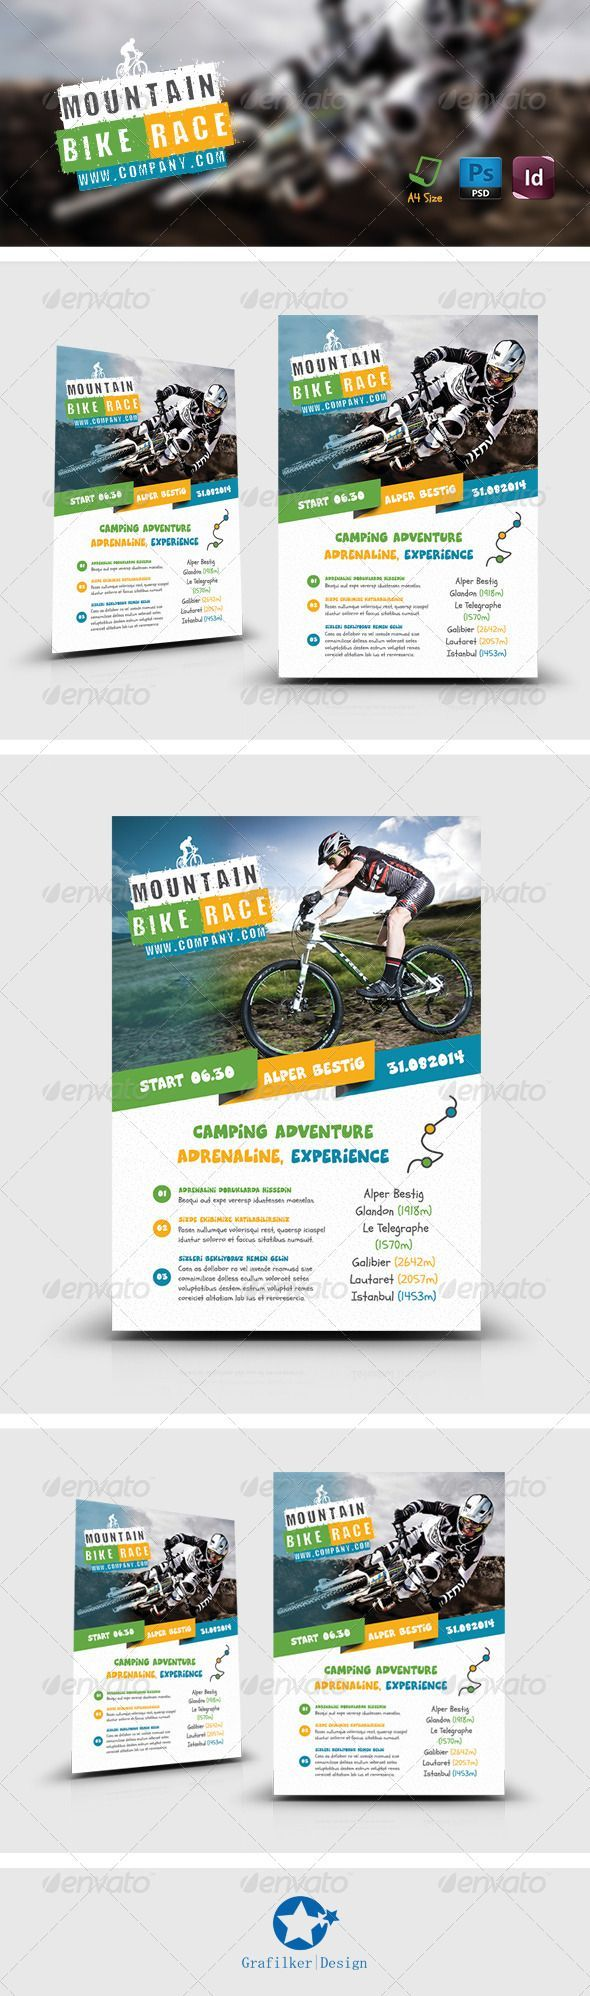 Rooms within the home cartoon 187 tinkytyler org stock photos - Bicycle Racing Flyer Templates